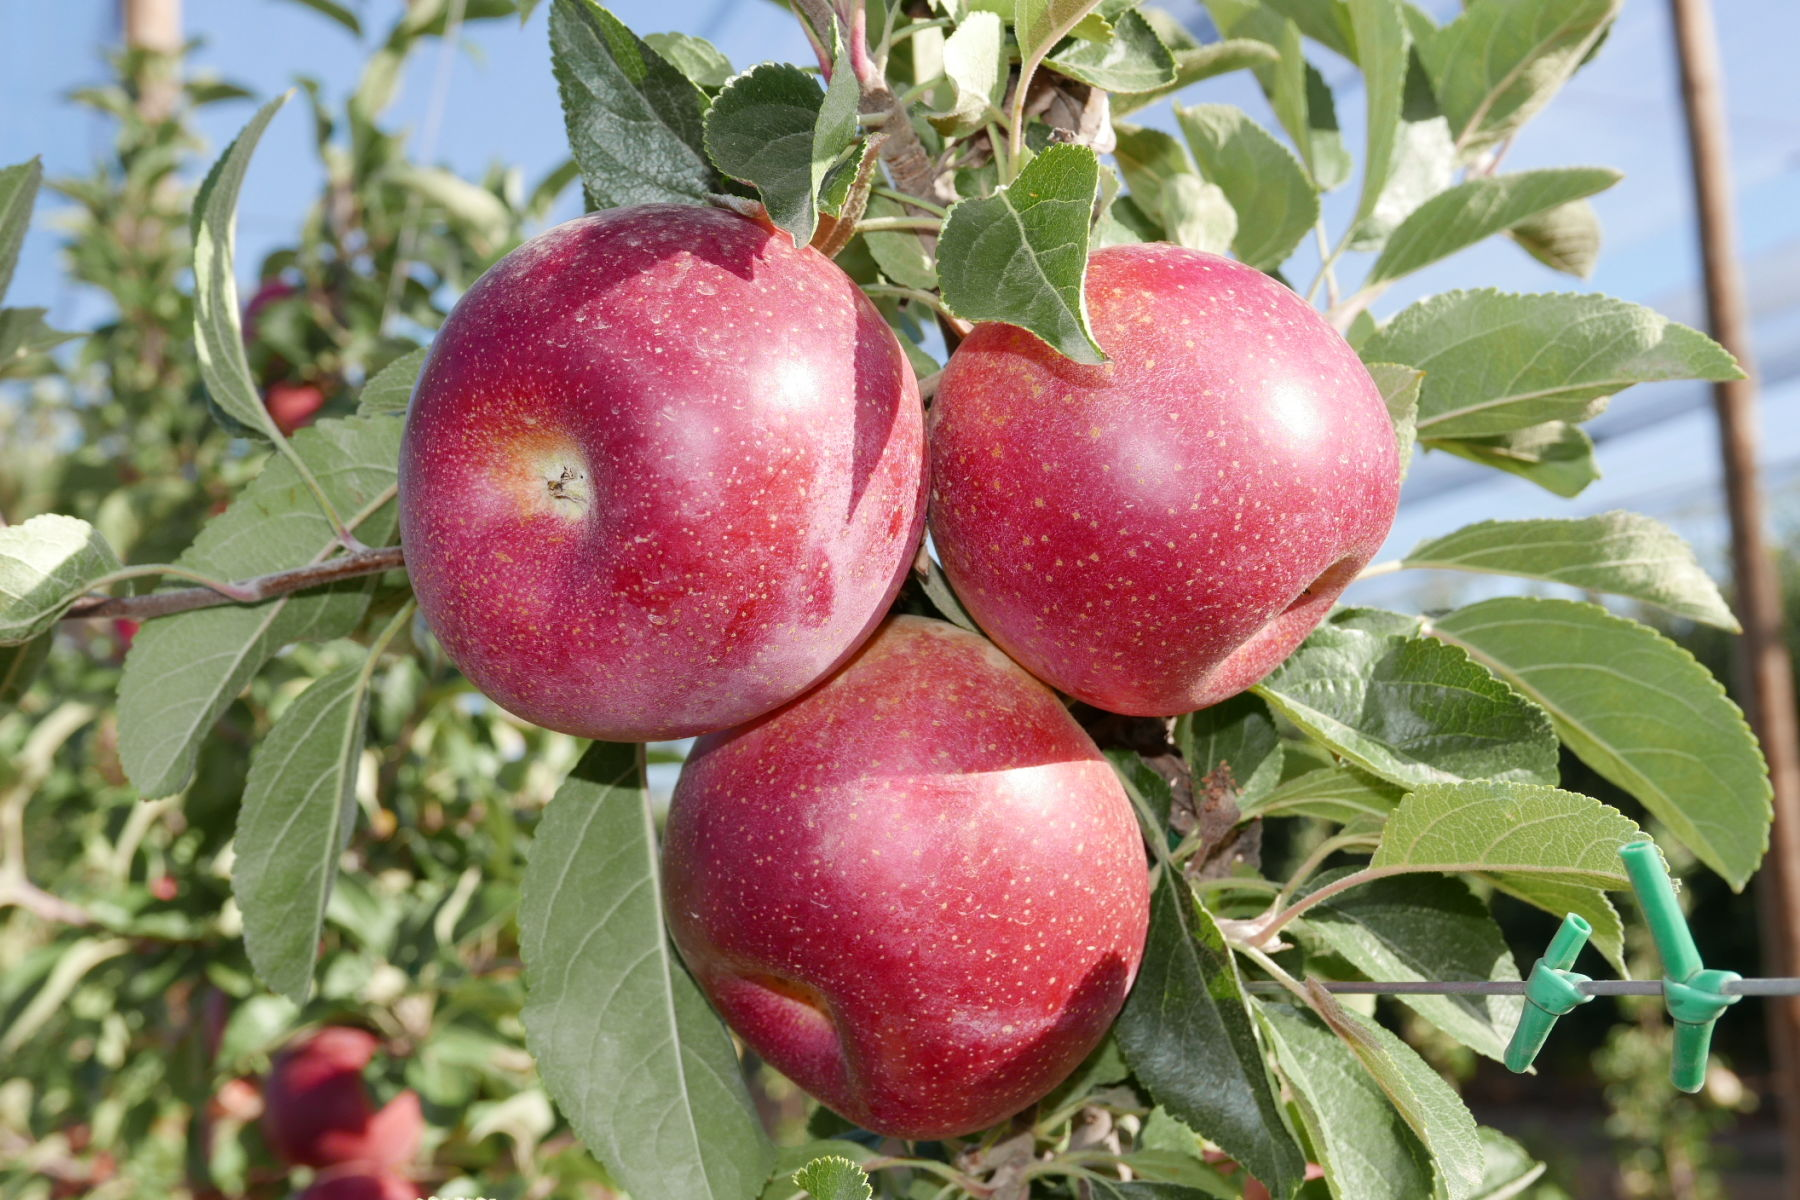 New apples pip the world